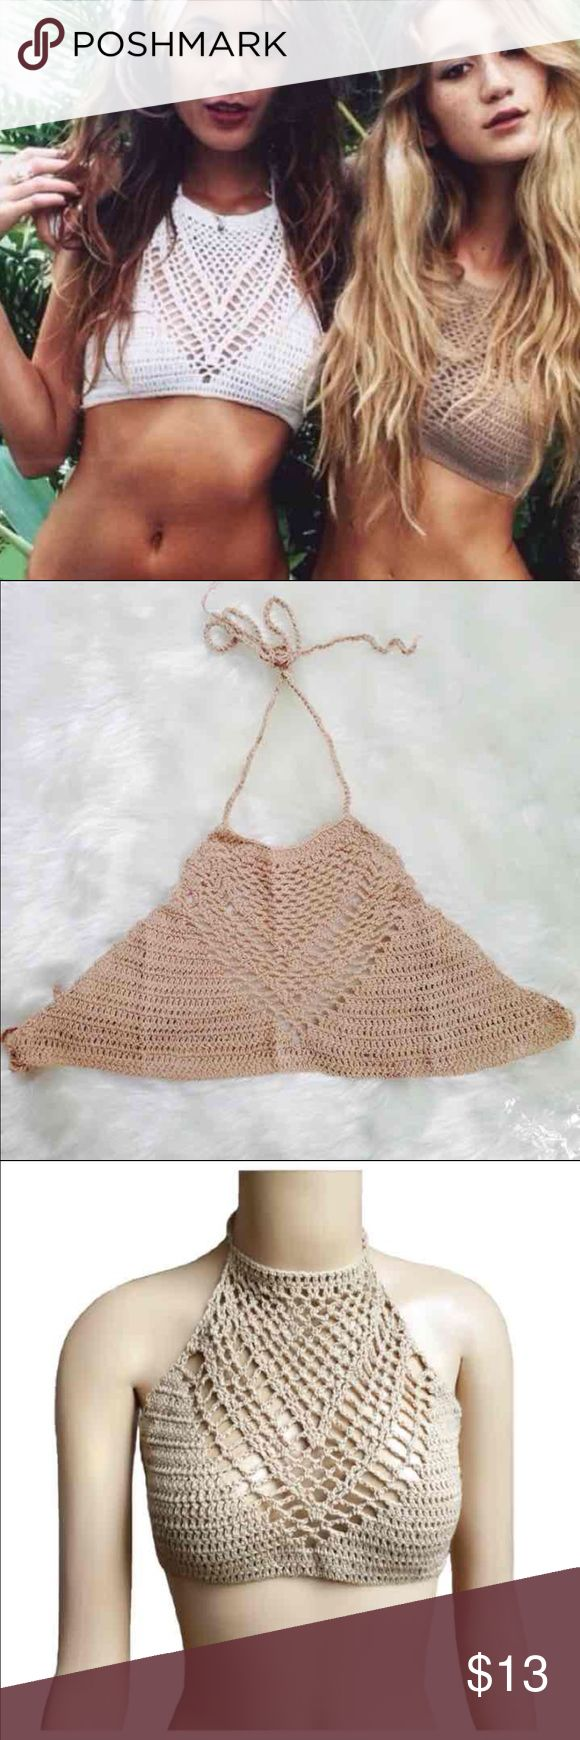 Crochet knit halter top Boho Super in! Use as festival top, bikini top or cute too with an oversized plaid shirt. I used it once! No padding size a/b cups better. WILL MODEL AGAIN IF ASKED Tops Crop Tops